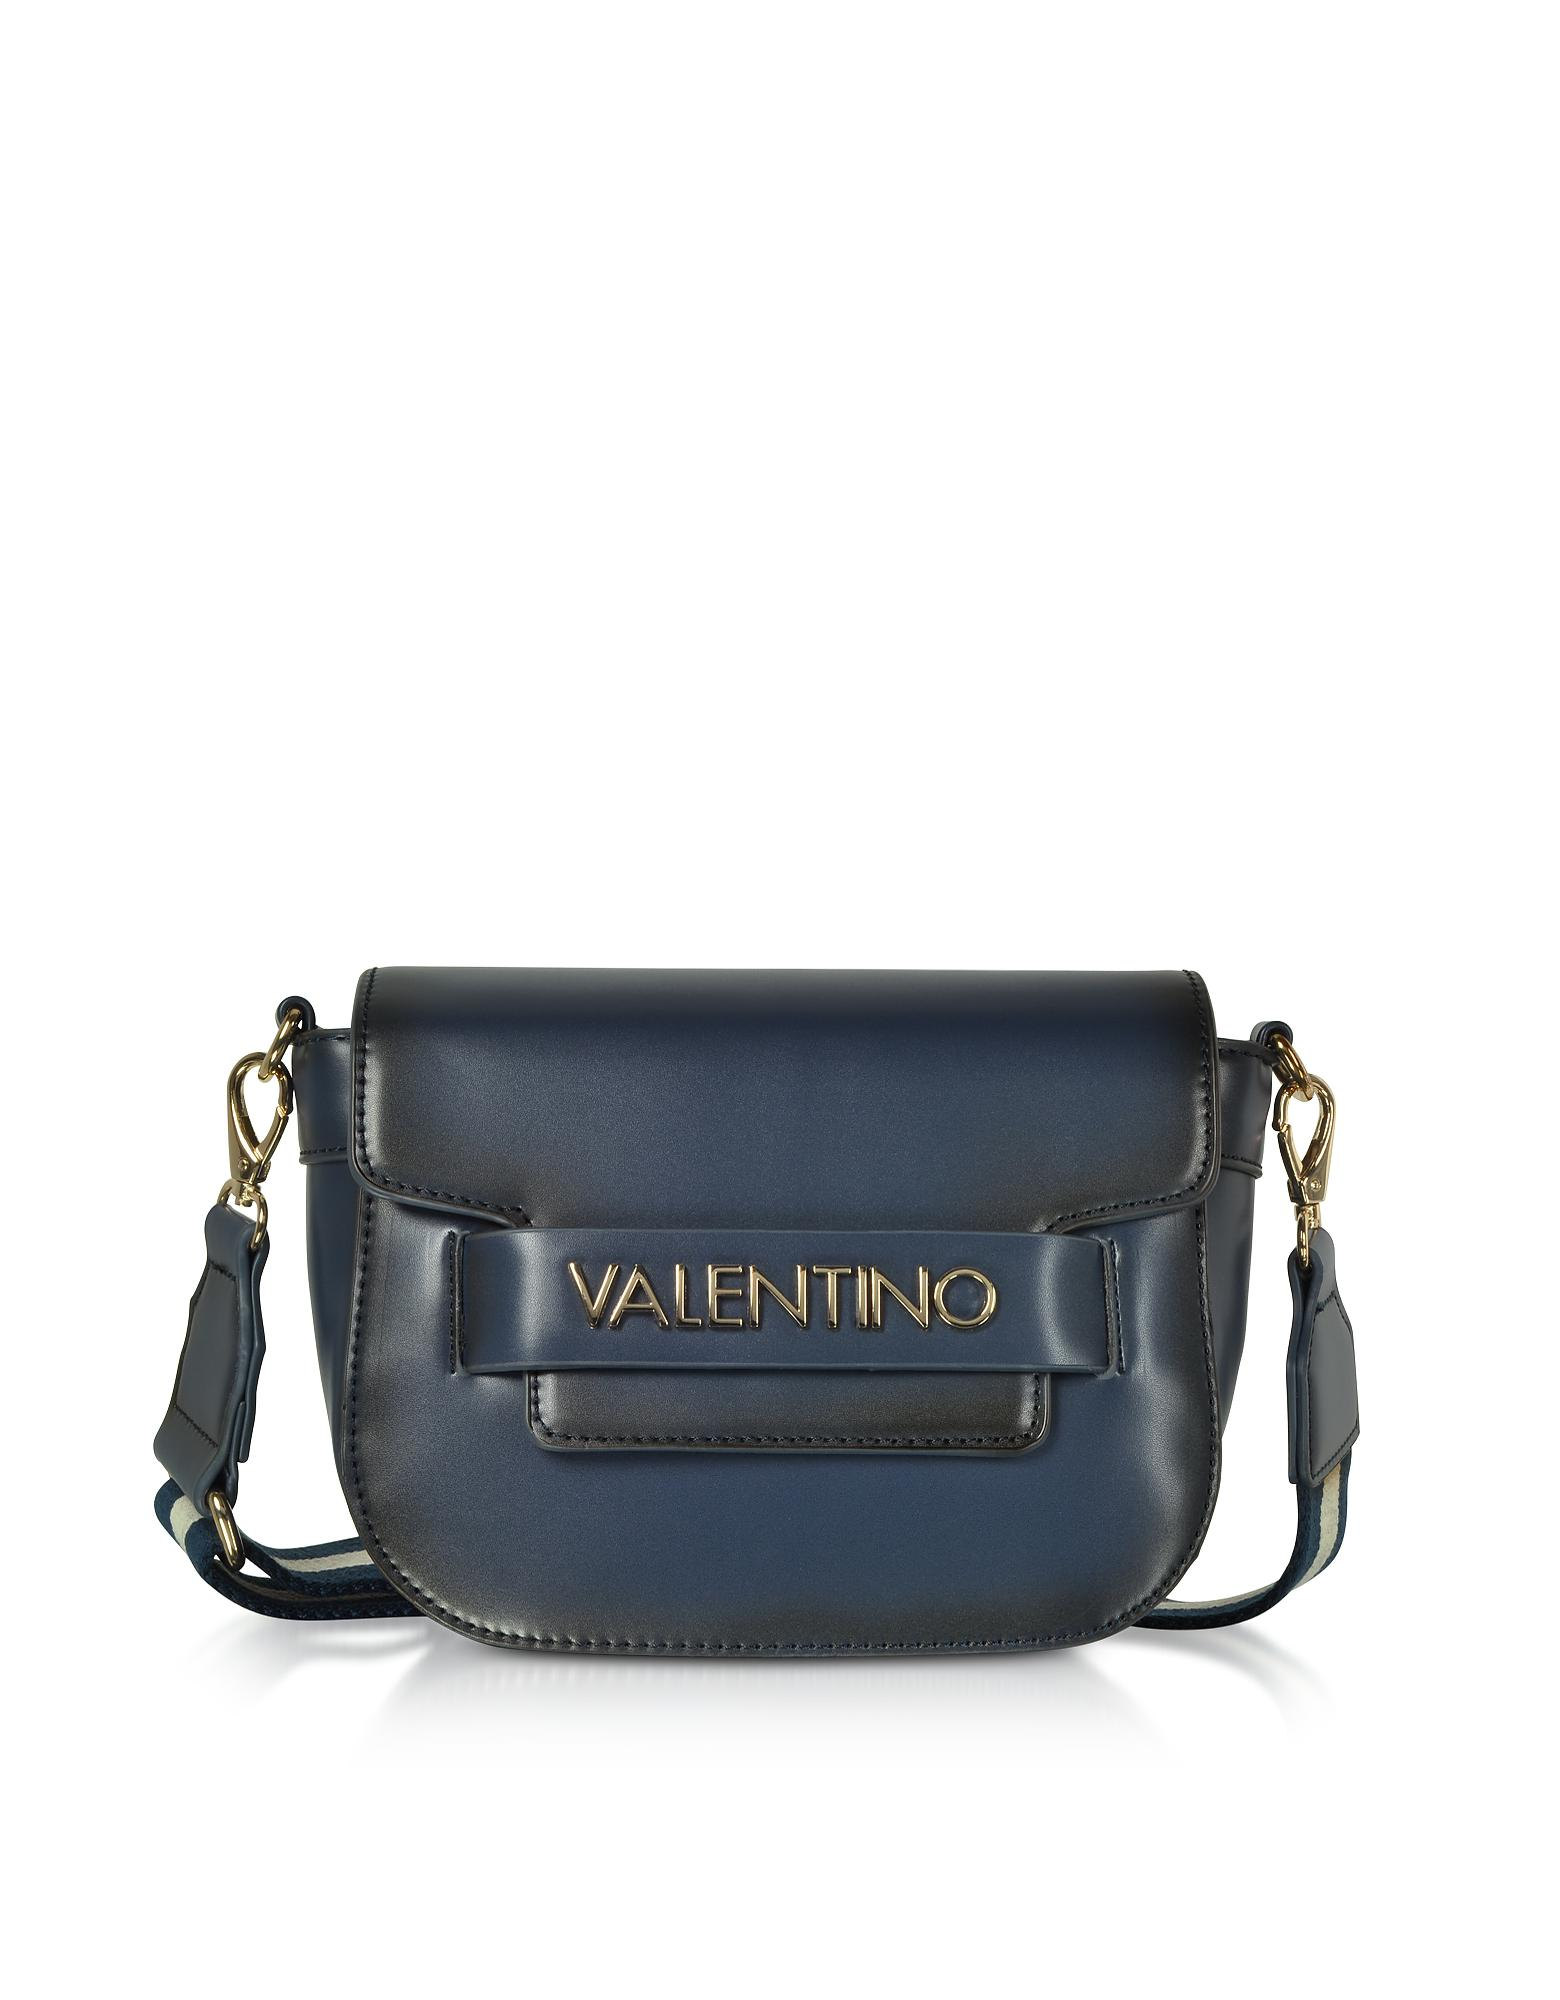 818128a3889c Lyst - Valentino By Mario Valentino Eco Leather Blast Small Shoulder ...